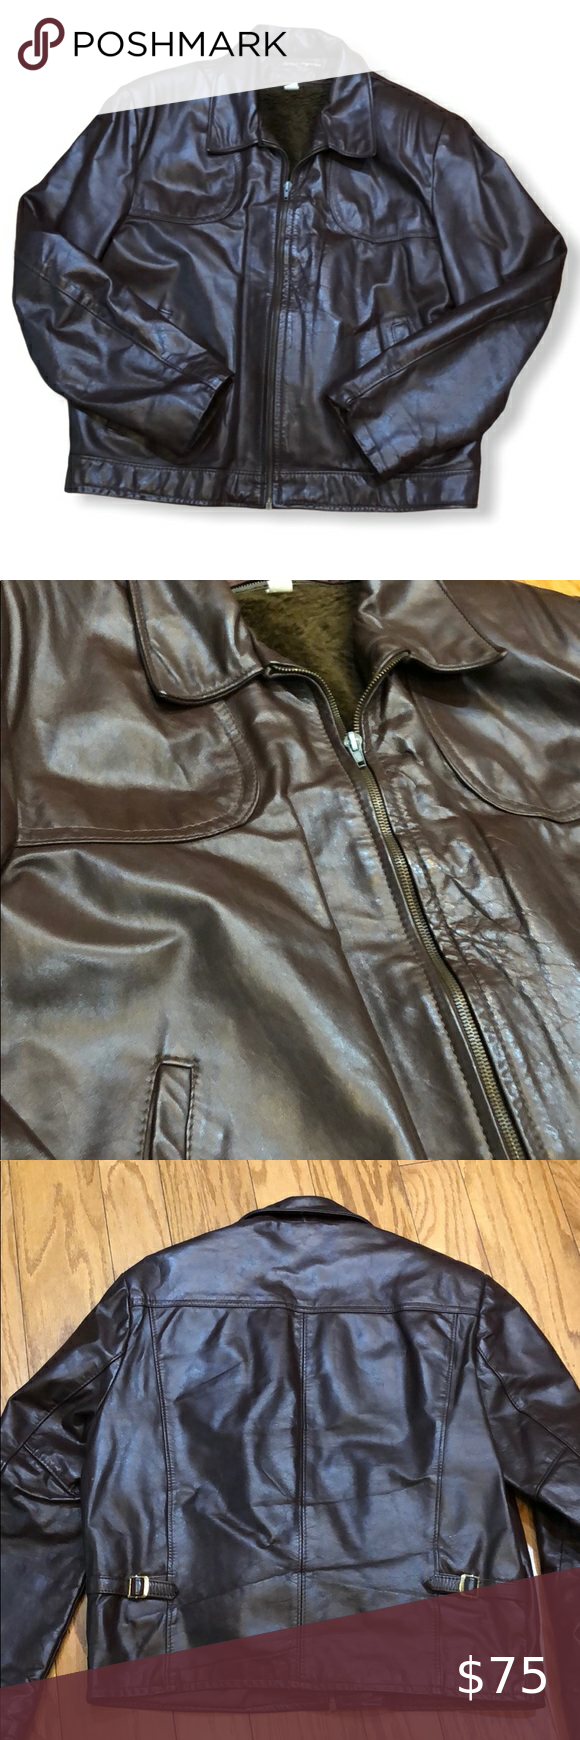 Excelled Leather Sheepskin Bomber Jacket In 2020 Bomber Jacket Vintage Bomber Jacket Jackets [ 1740 x 580 Pixel ]